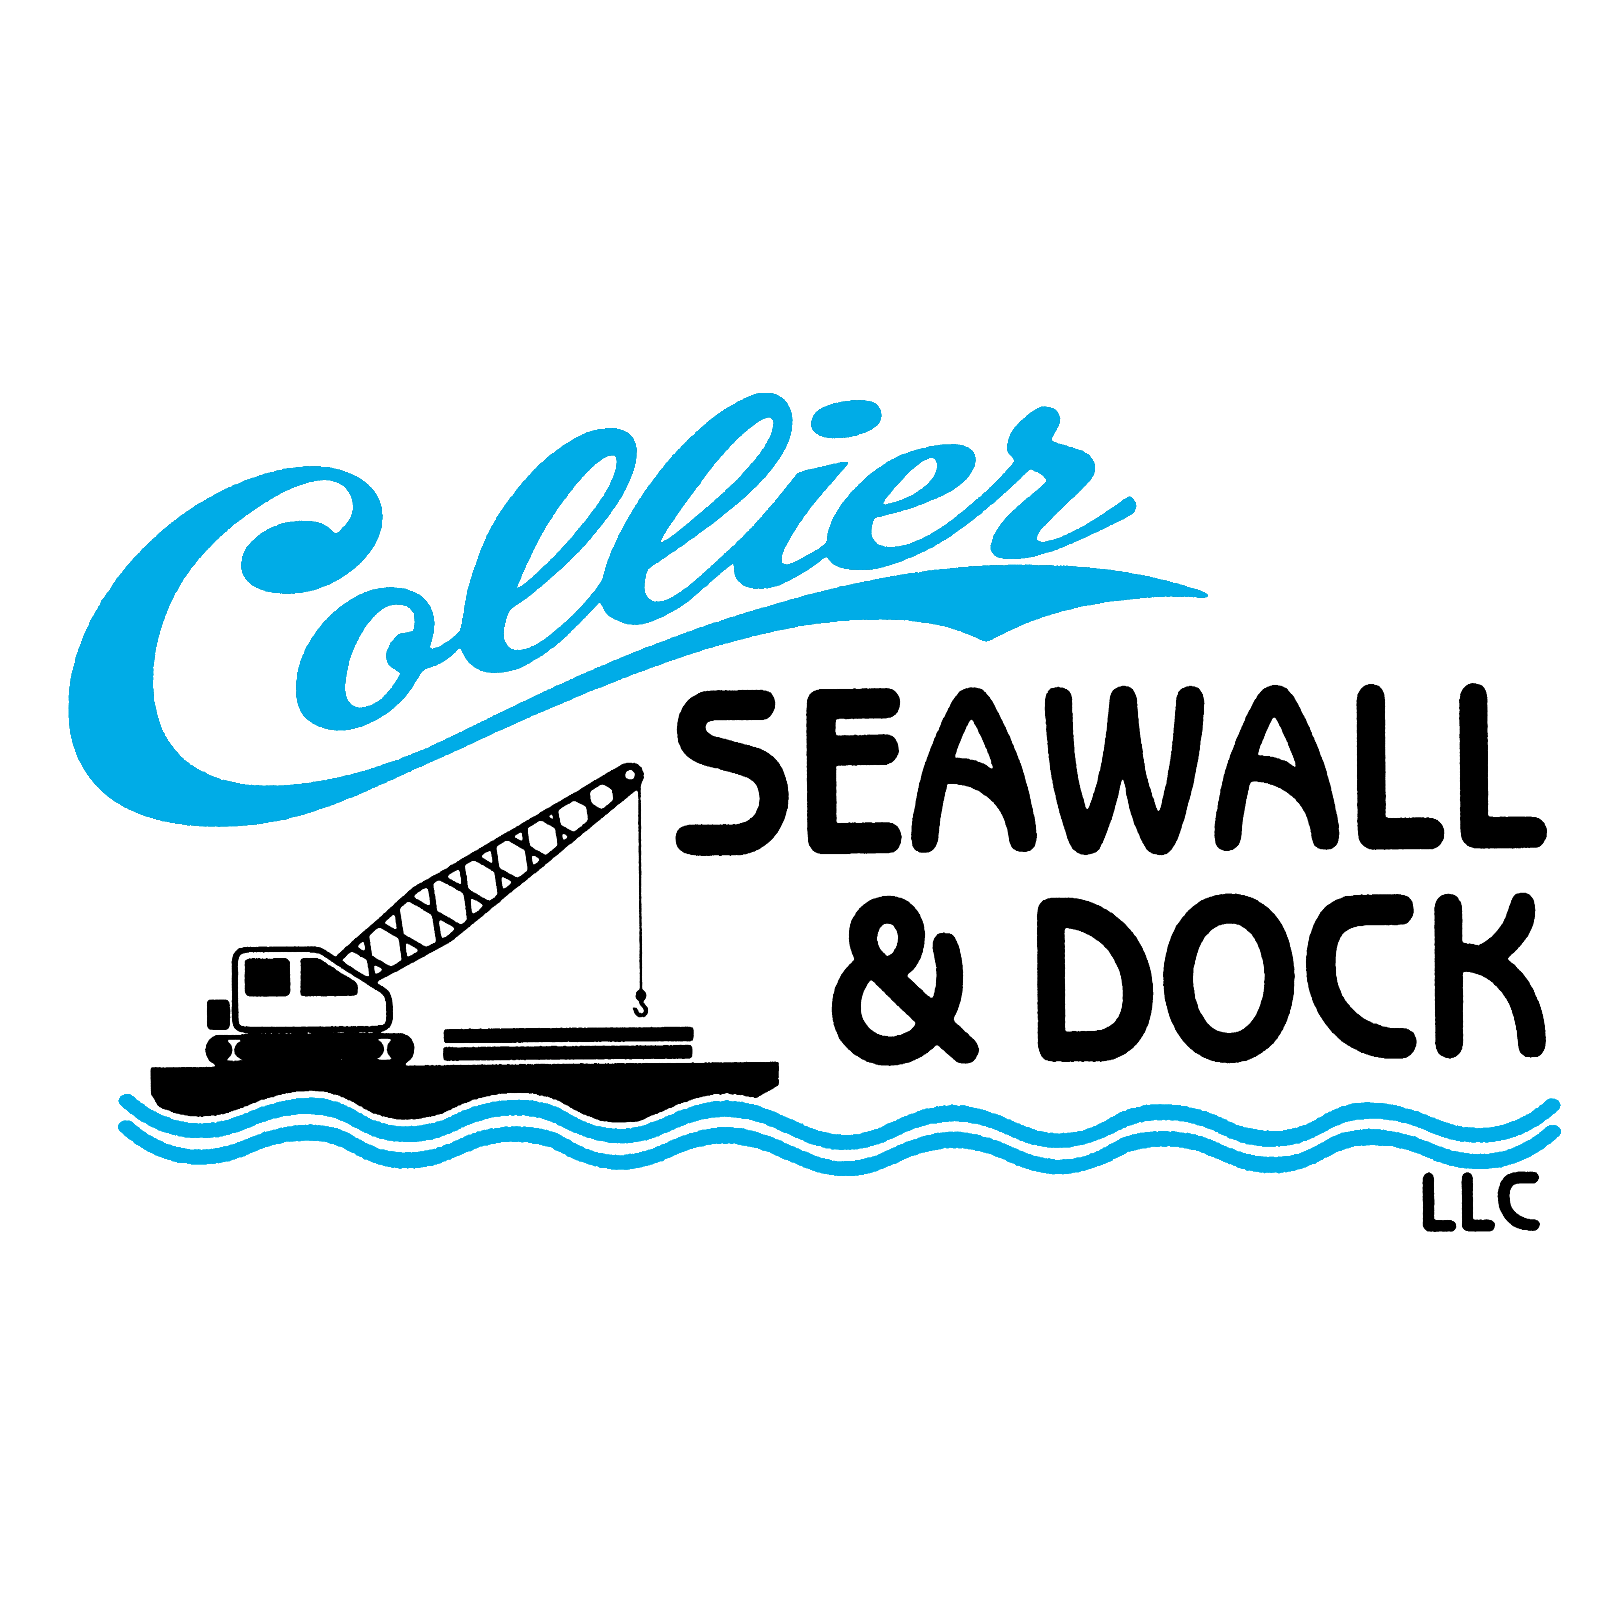 Collier Seawall & Dock, LLC